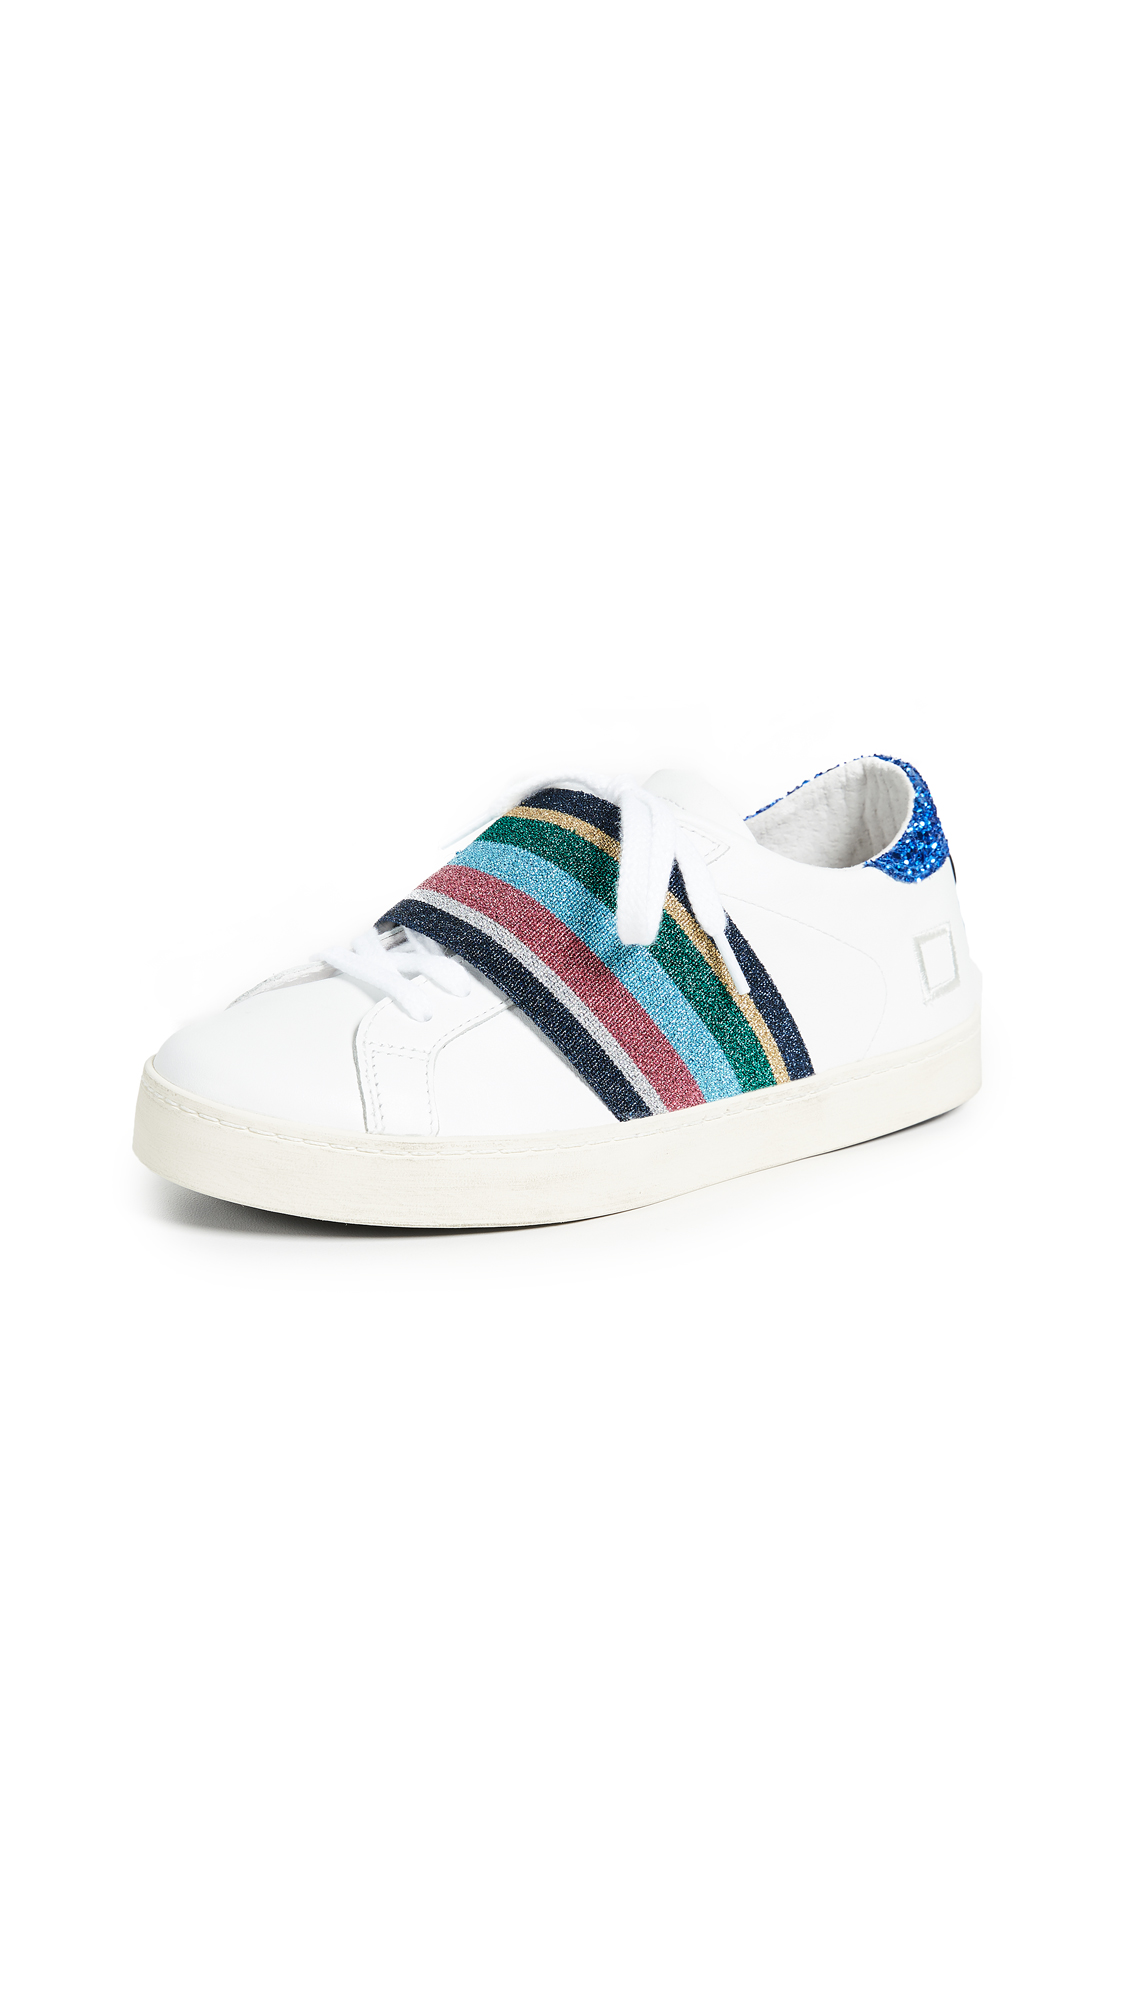 D.A.T.E. Hill Pop Sneakers In Elastic